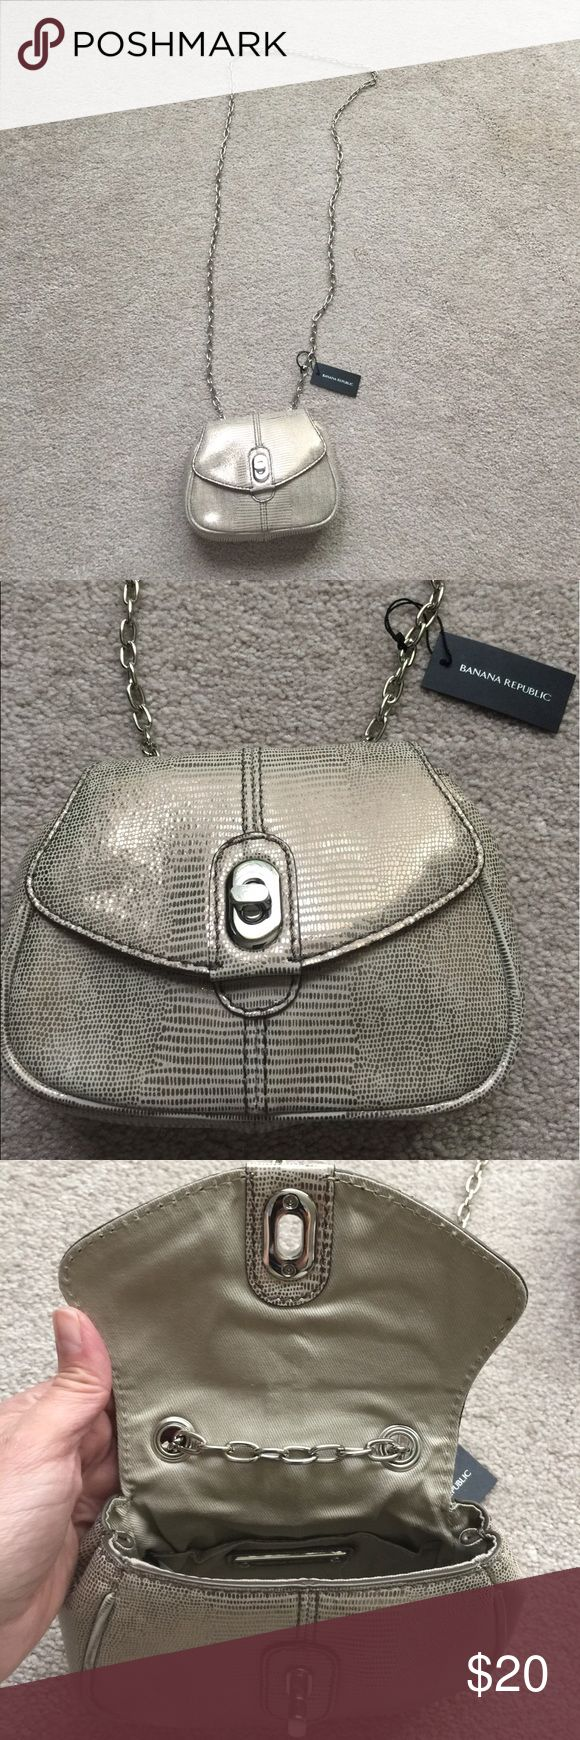 Banana Republic mini bag Very cute evening bag!! Mini size, my iPhone+ doesn't fit. It's great for a lipstick, compact mirror, credit cards, keys. Gold color, chain strap that can be doubled to make shorter. Banana Republic Bags Mini Bags